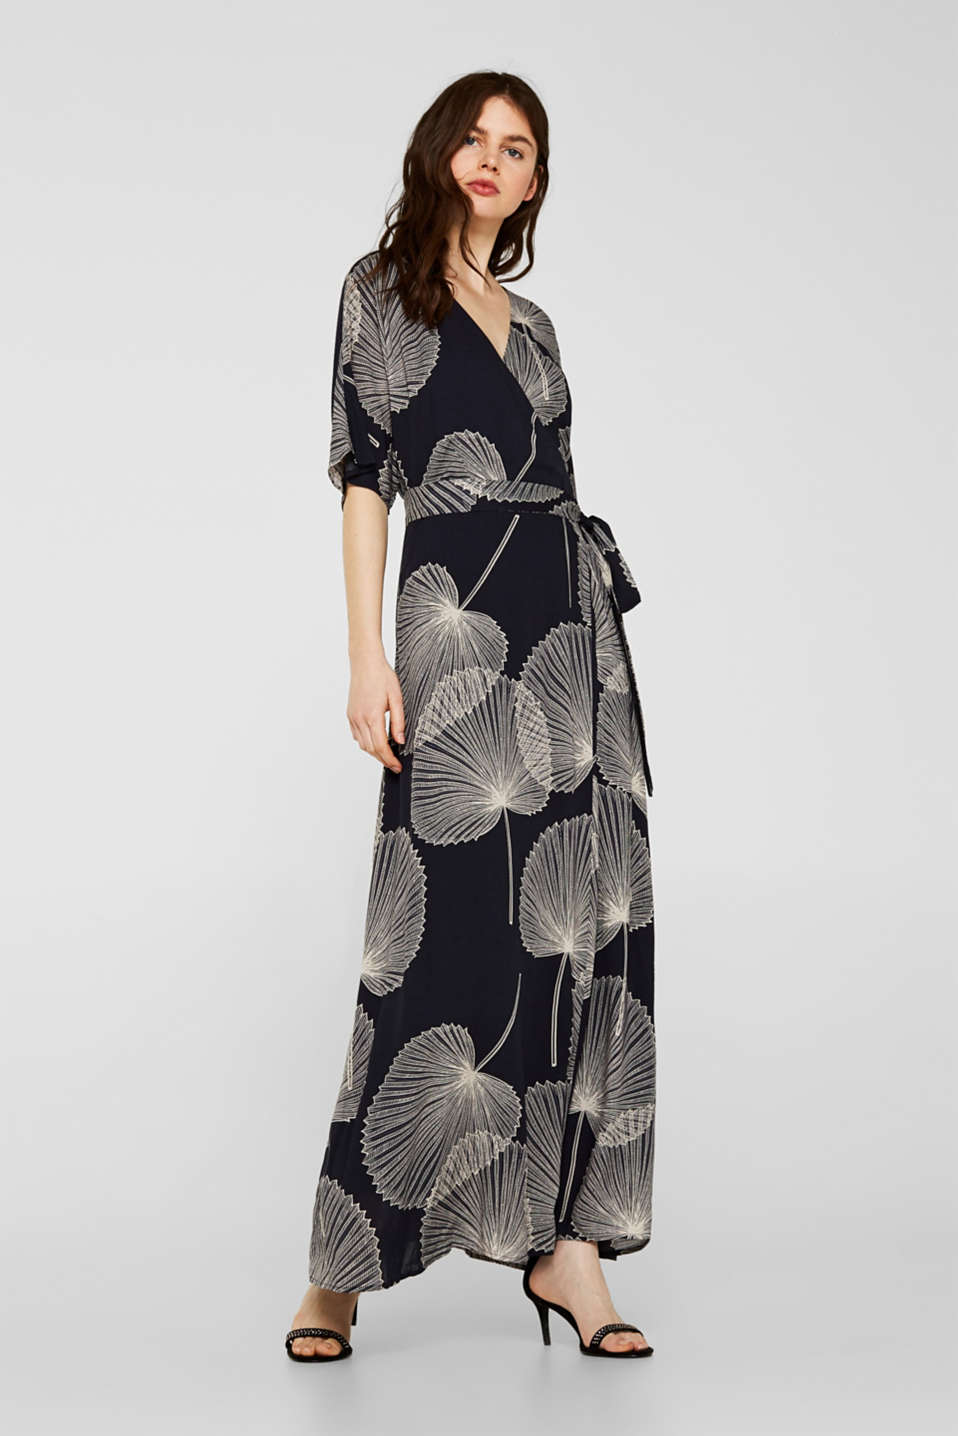 Esprit - Maxi dress in jacquard fabric with a wrap-over effect